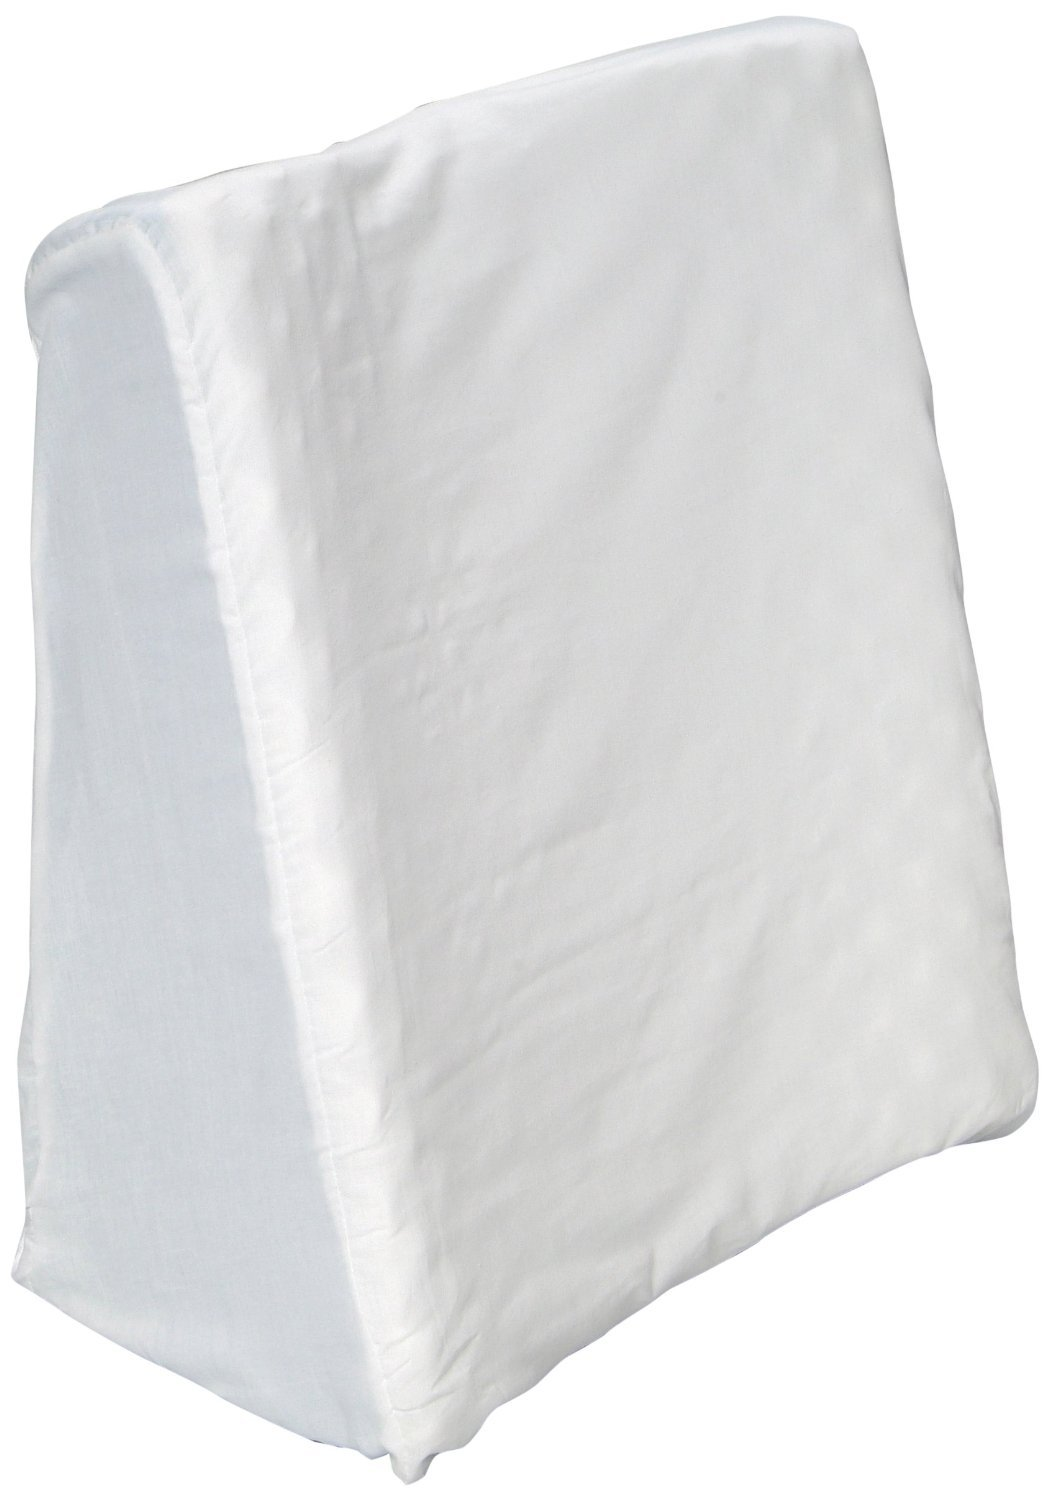 Hermell Products Inc. Dual Position Replacement White Cover, MJ1796, 1'11'' x 1'7'' x 1', by Hermell Products Inc.